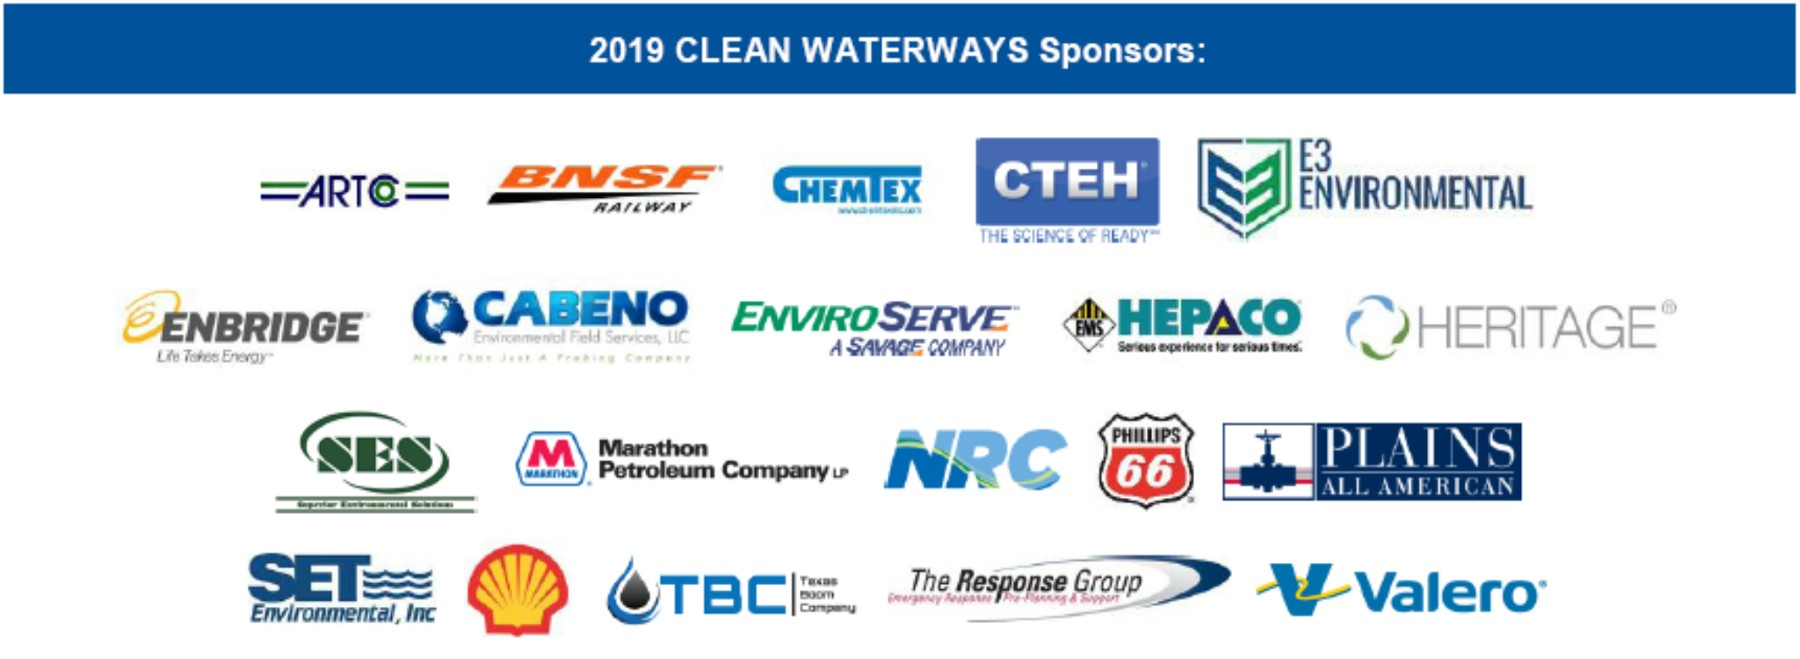 2019 Clean Waterways Corporate Sponsors